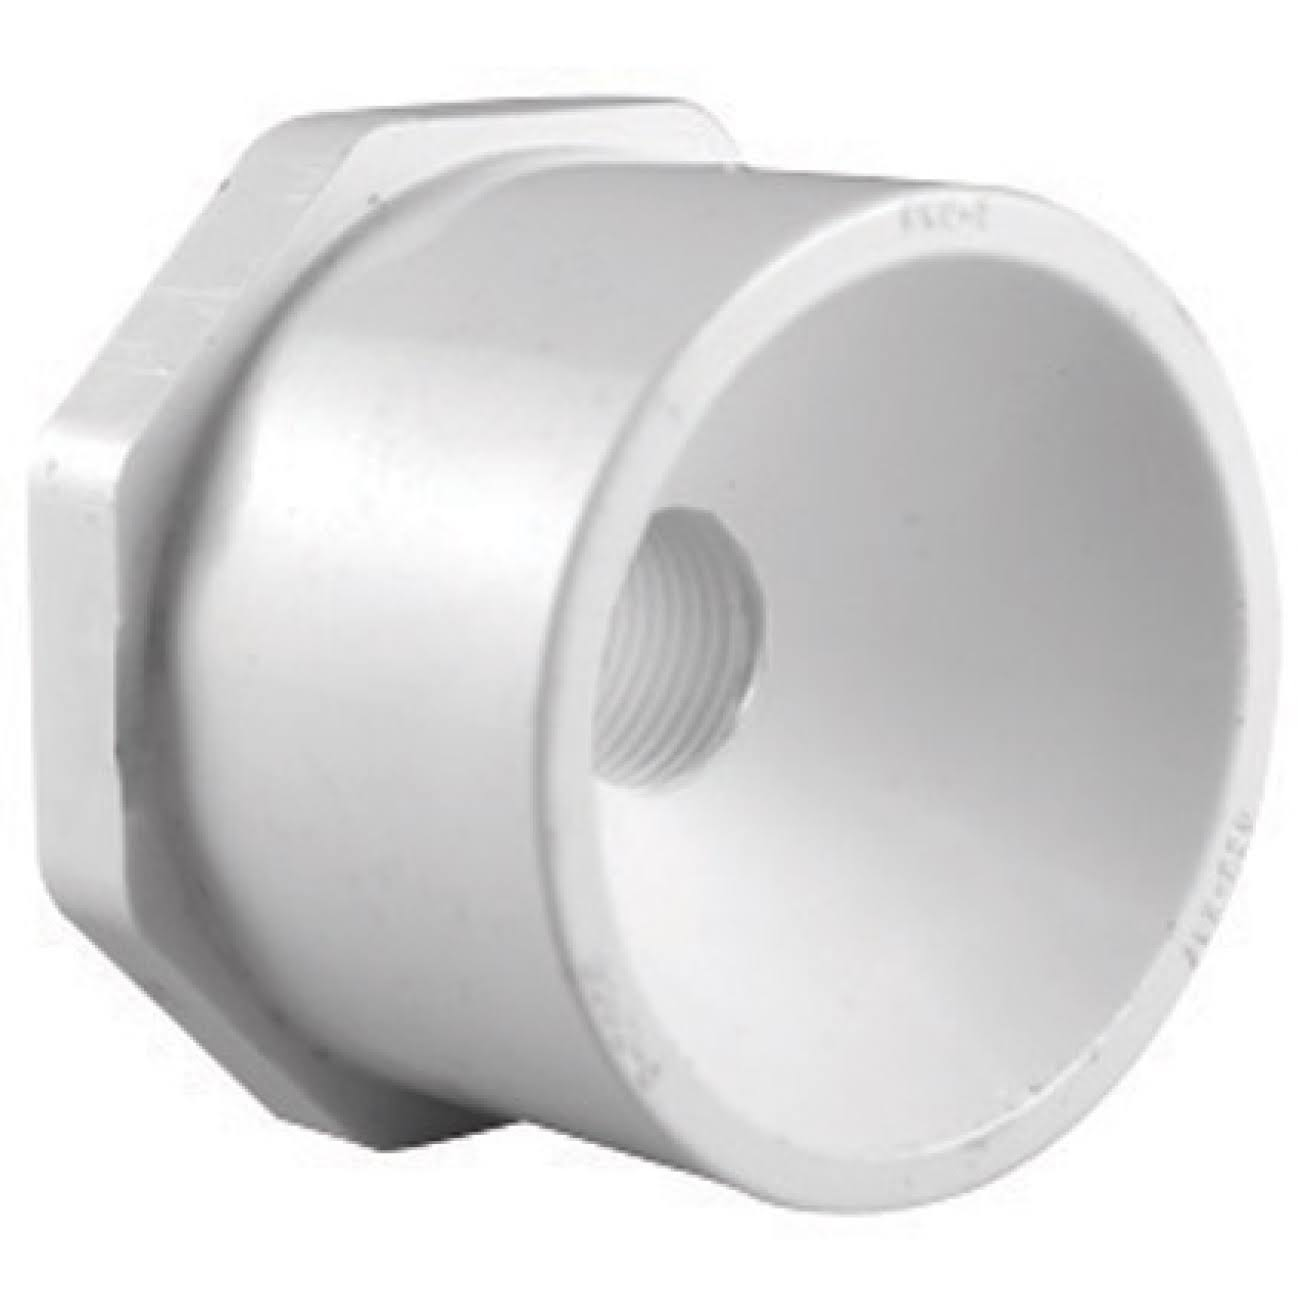 "Charlotte PVC Schedule 40 Reducer Bushing - White, 1-1/4"" x 1"""